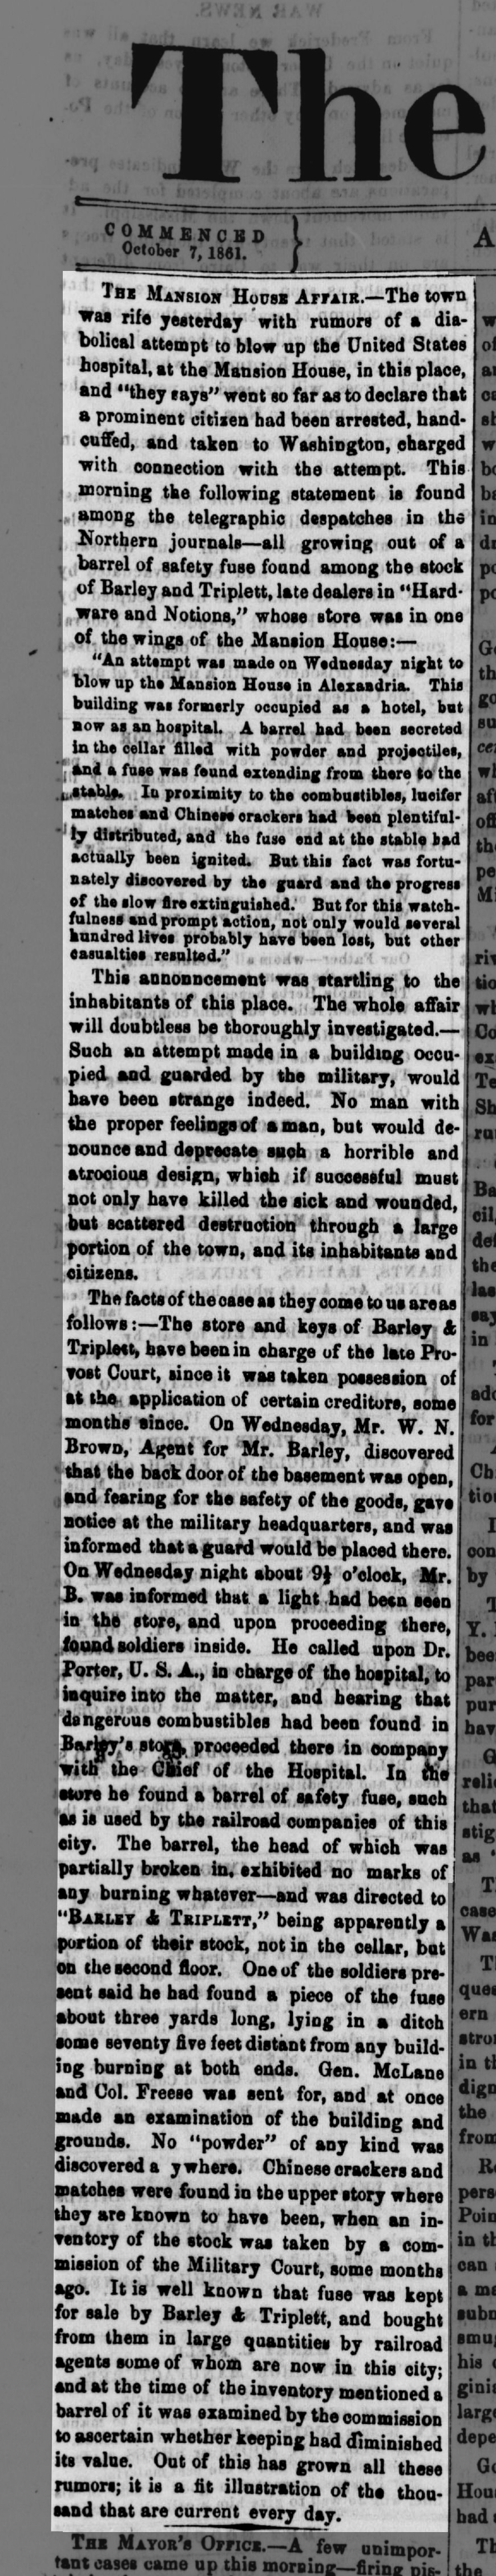 A close-up of the story in the Jan. 10, 1862 Alexandria Gazette